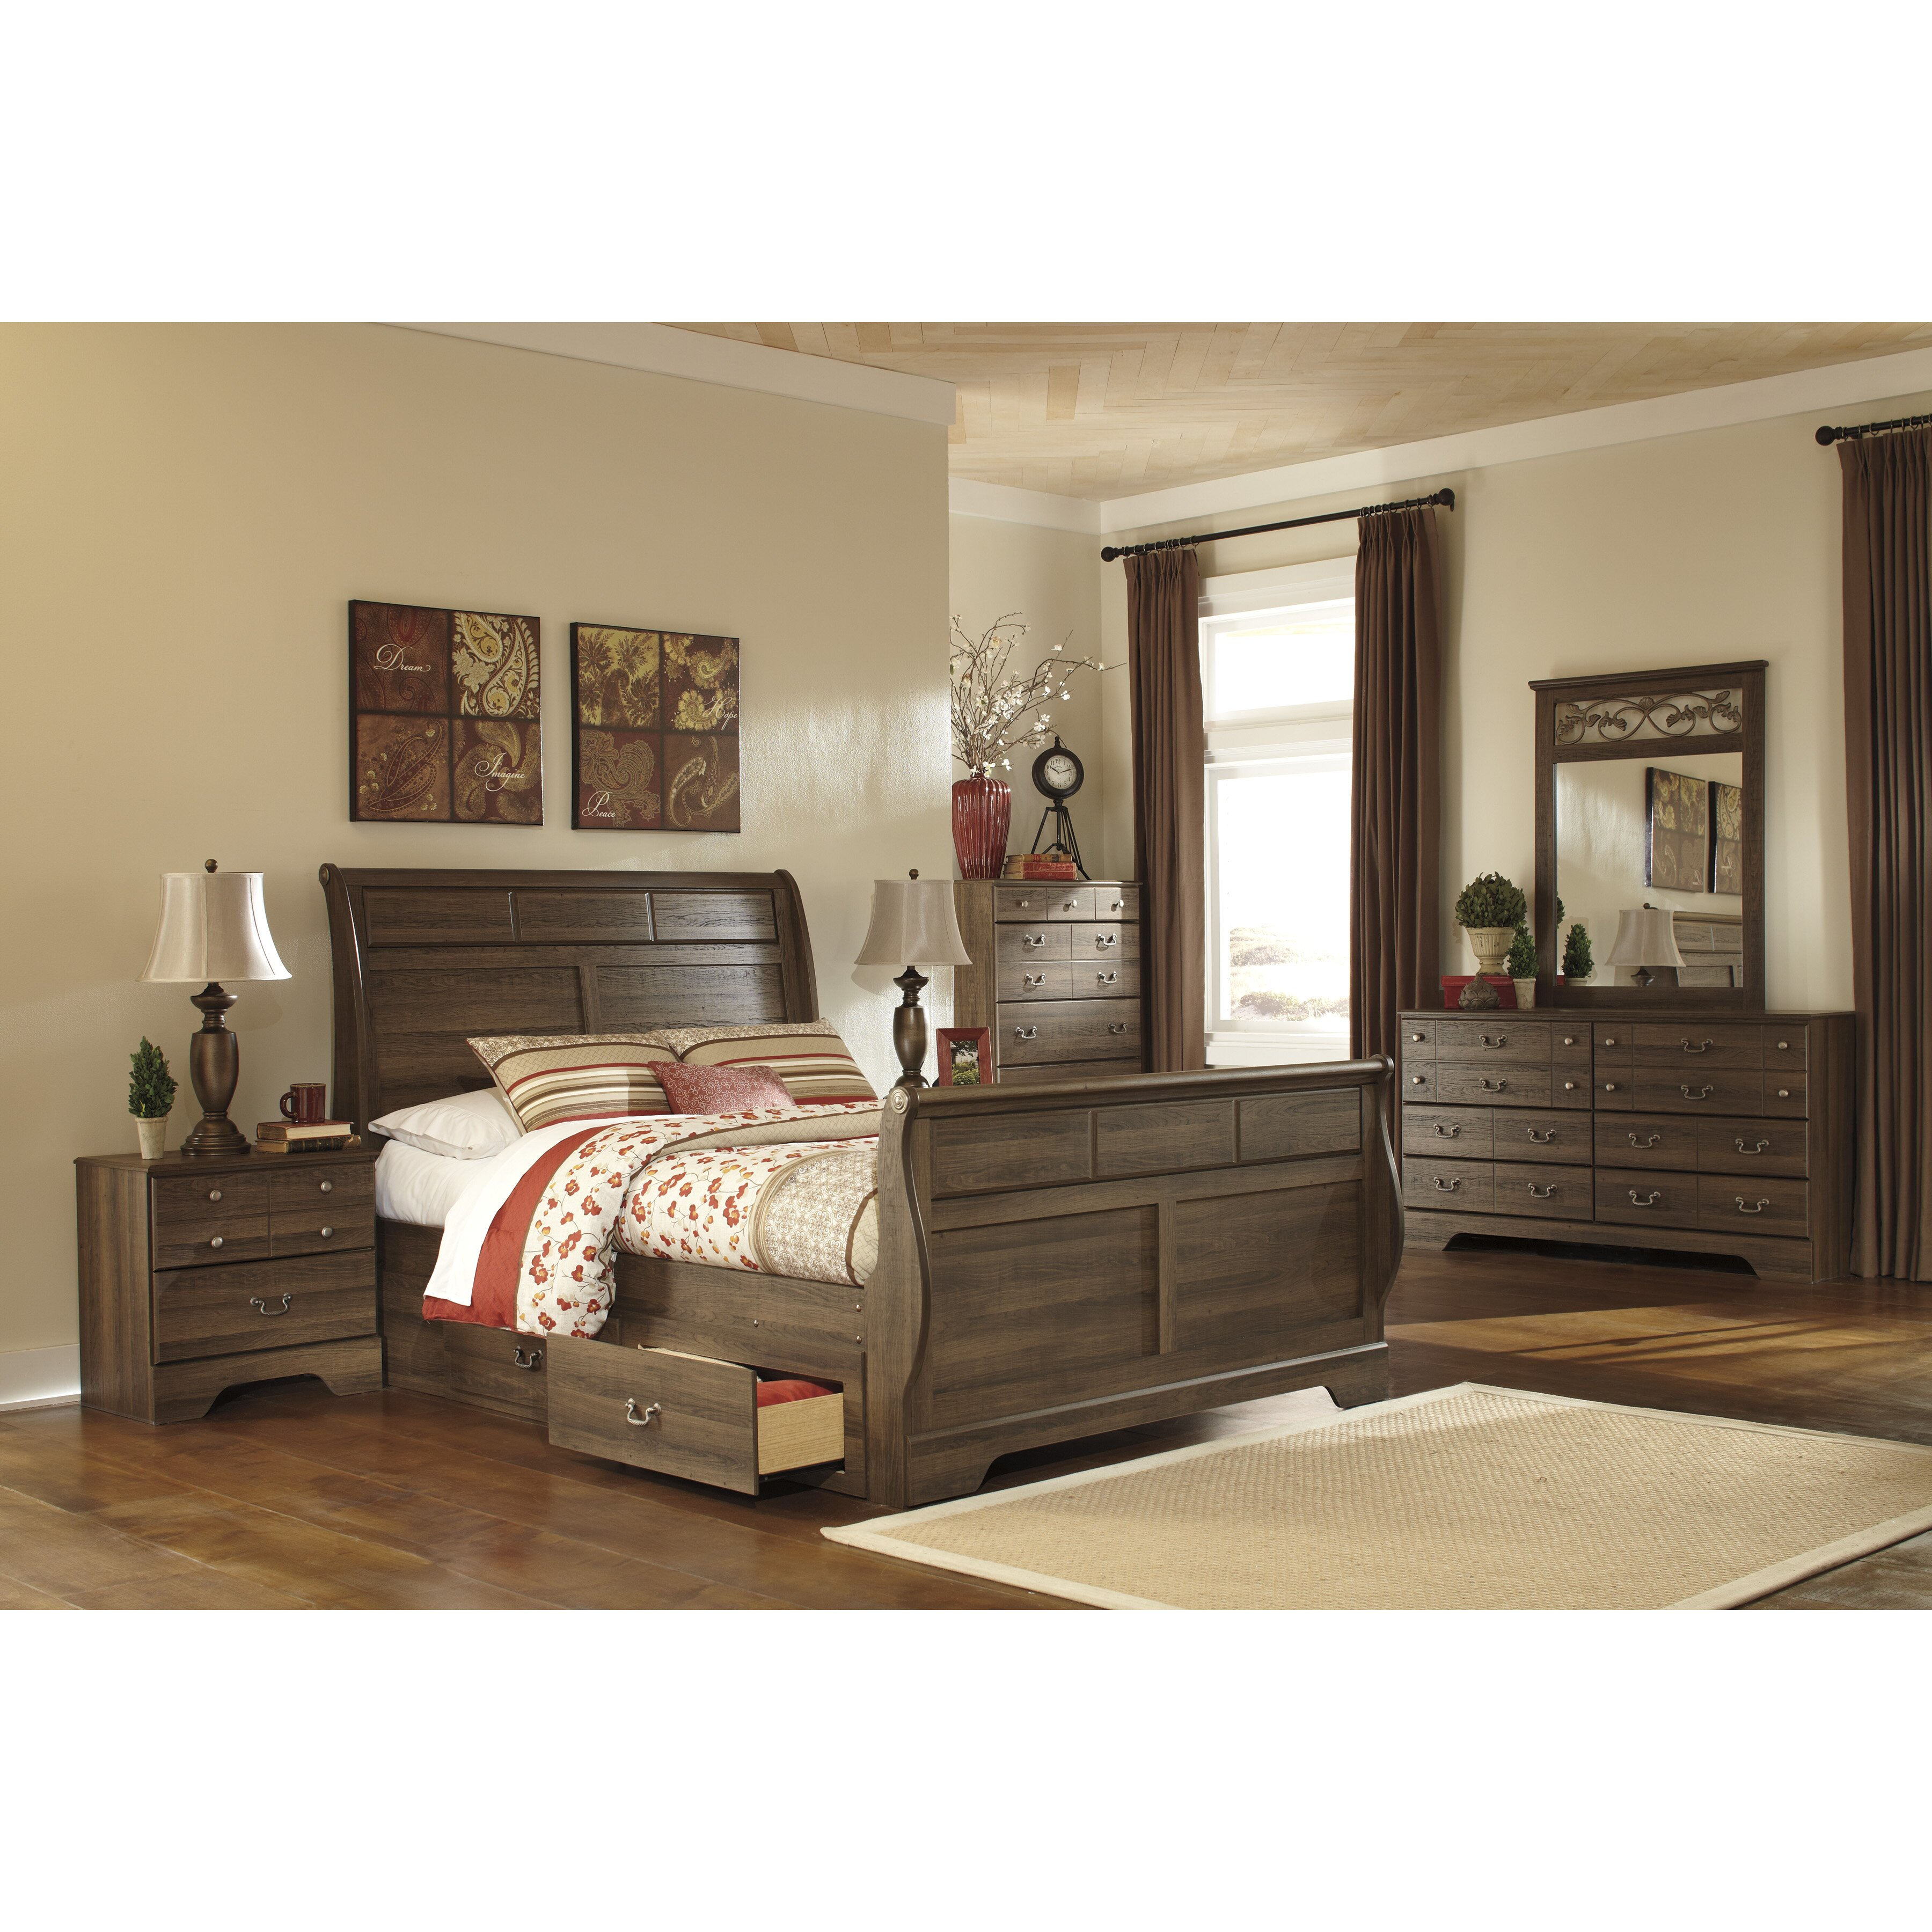 Signature design by ashley allymore sleigh customizable bedroom set reviews wayfair - Bedroom sets ashley furniture ...